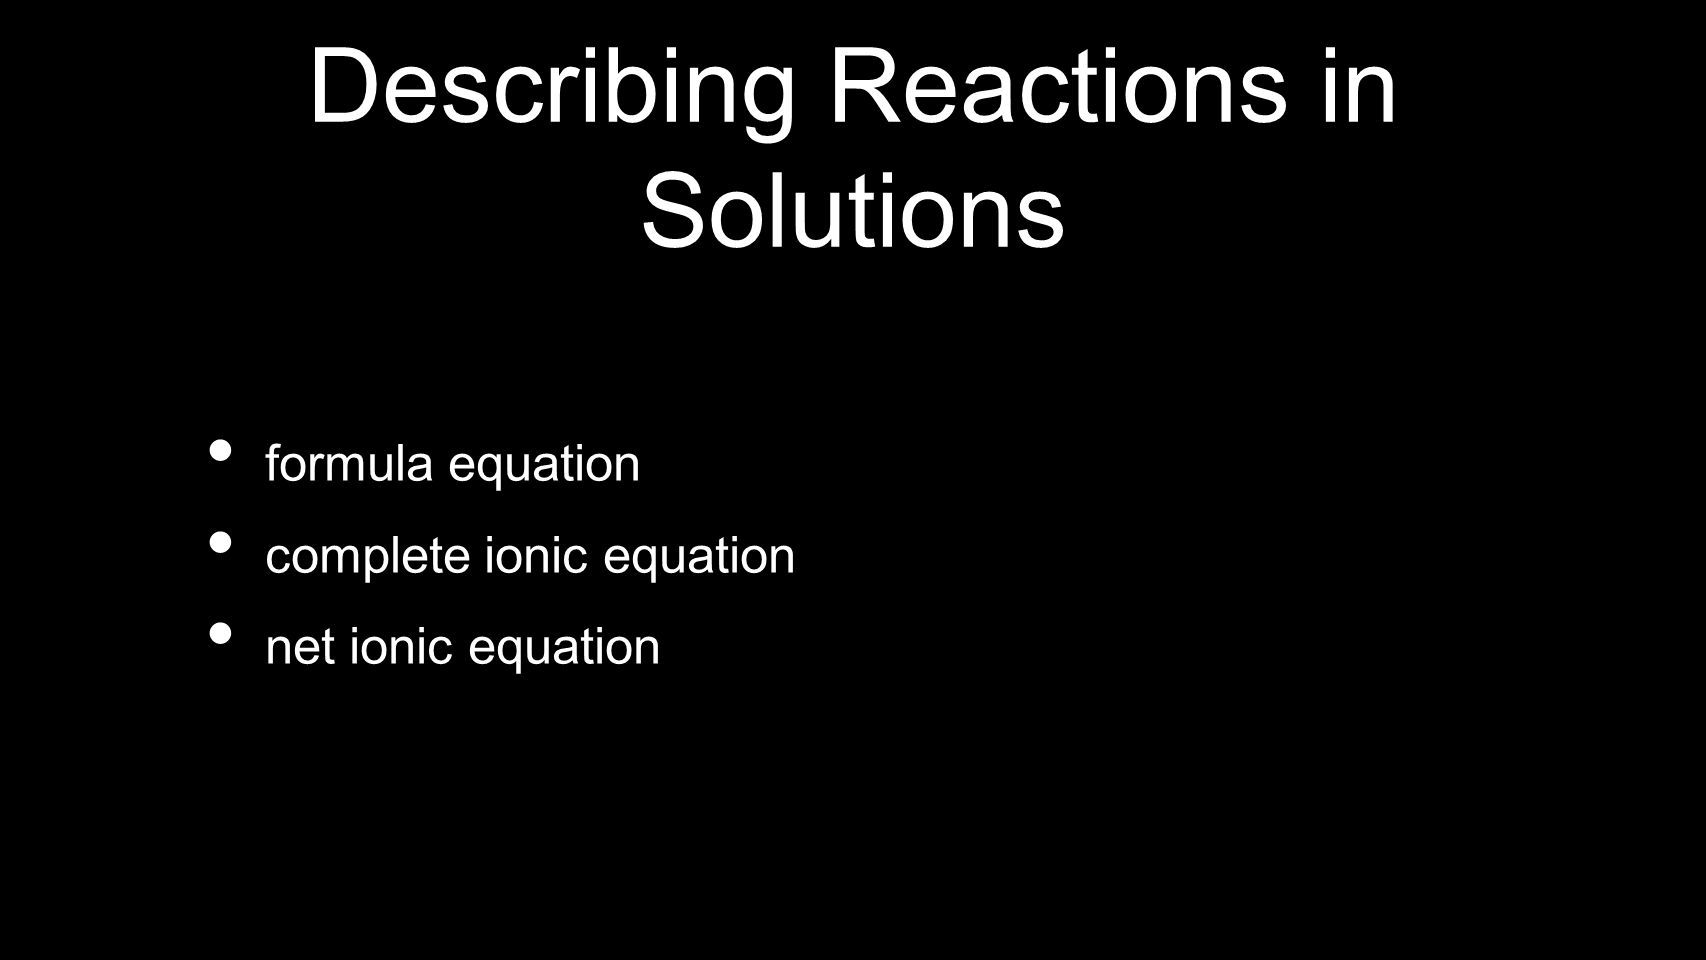 Describing Reactions in Solutions